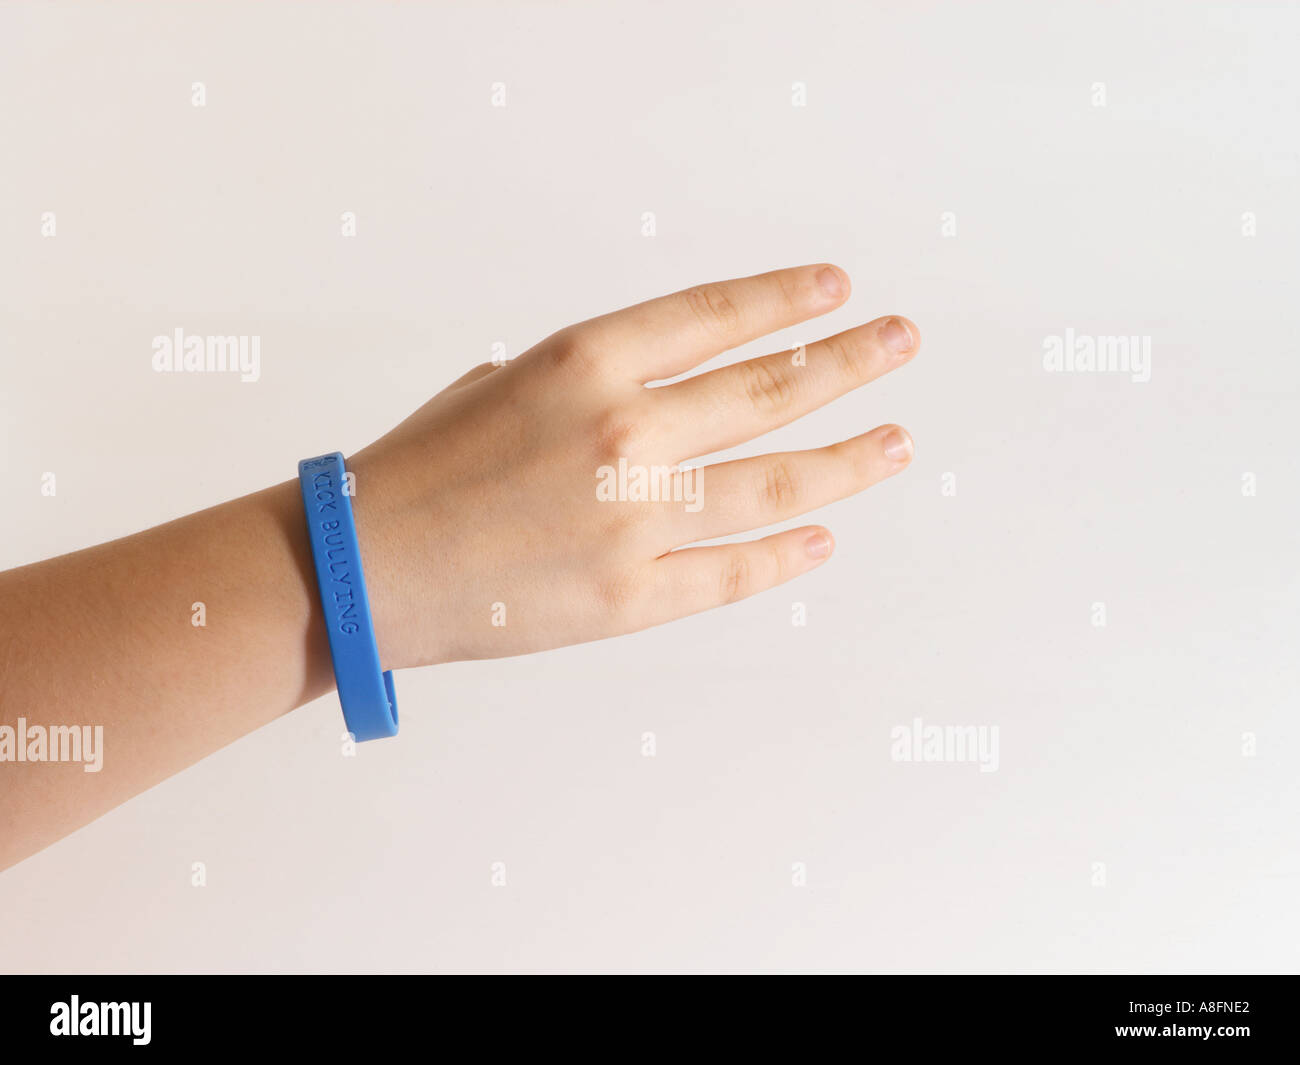 Anti Bullying Stock Photos & Anti Bullying Stock Images - Alamy